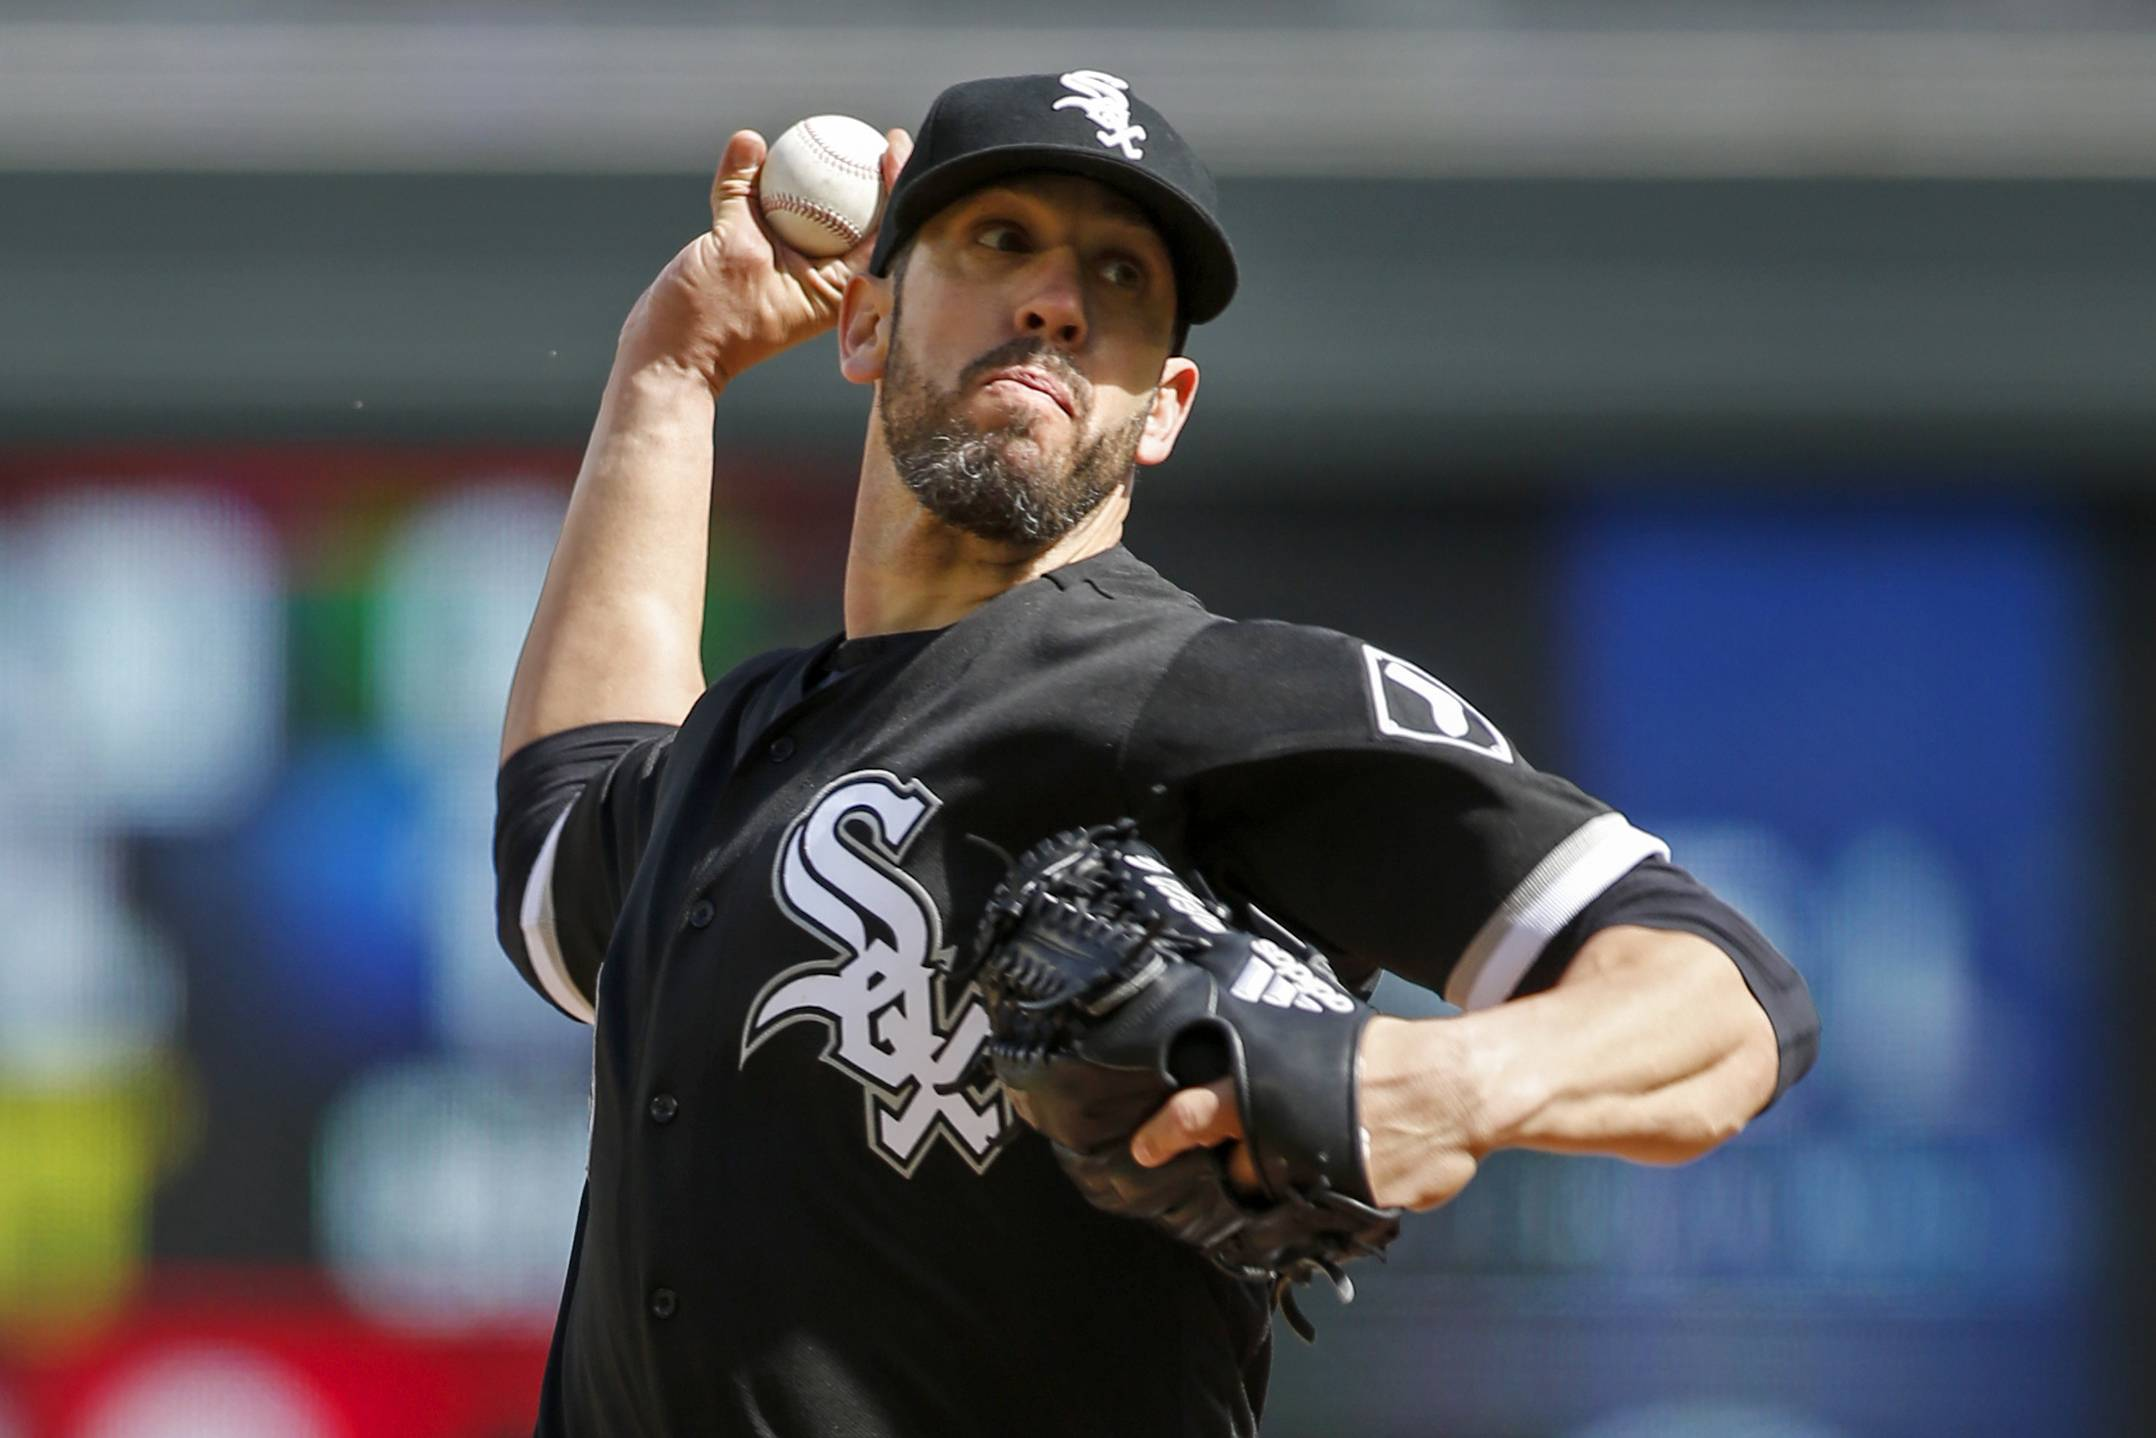 James Shields went on the disabled list Friday with a strained right lat. The Chicago White Sox could have replaced Shields with one of their pitching prospects, but they are calling up veteran Mike Pelfrey from Class AAA Charlotte.